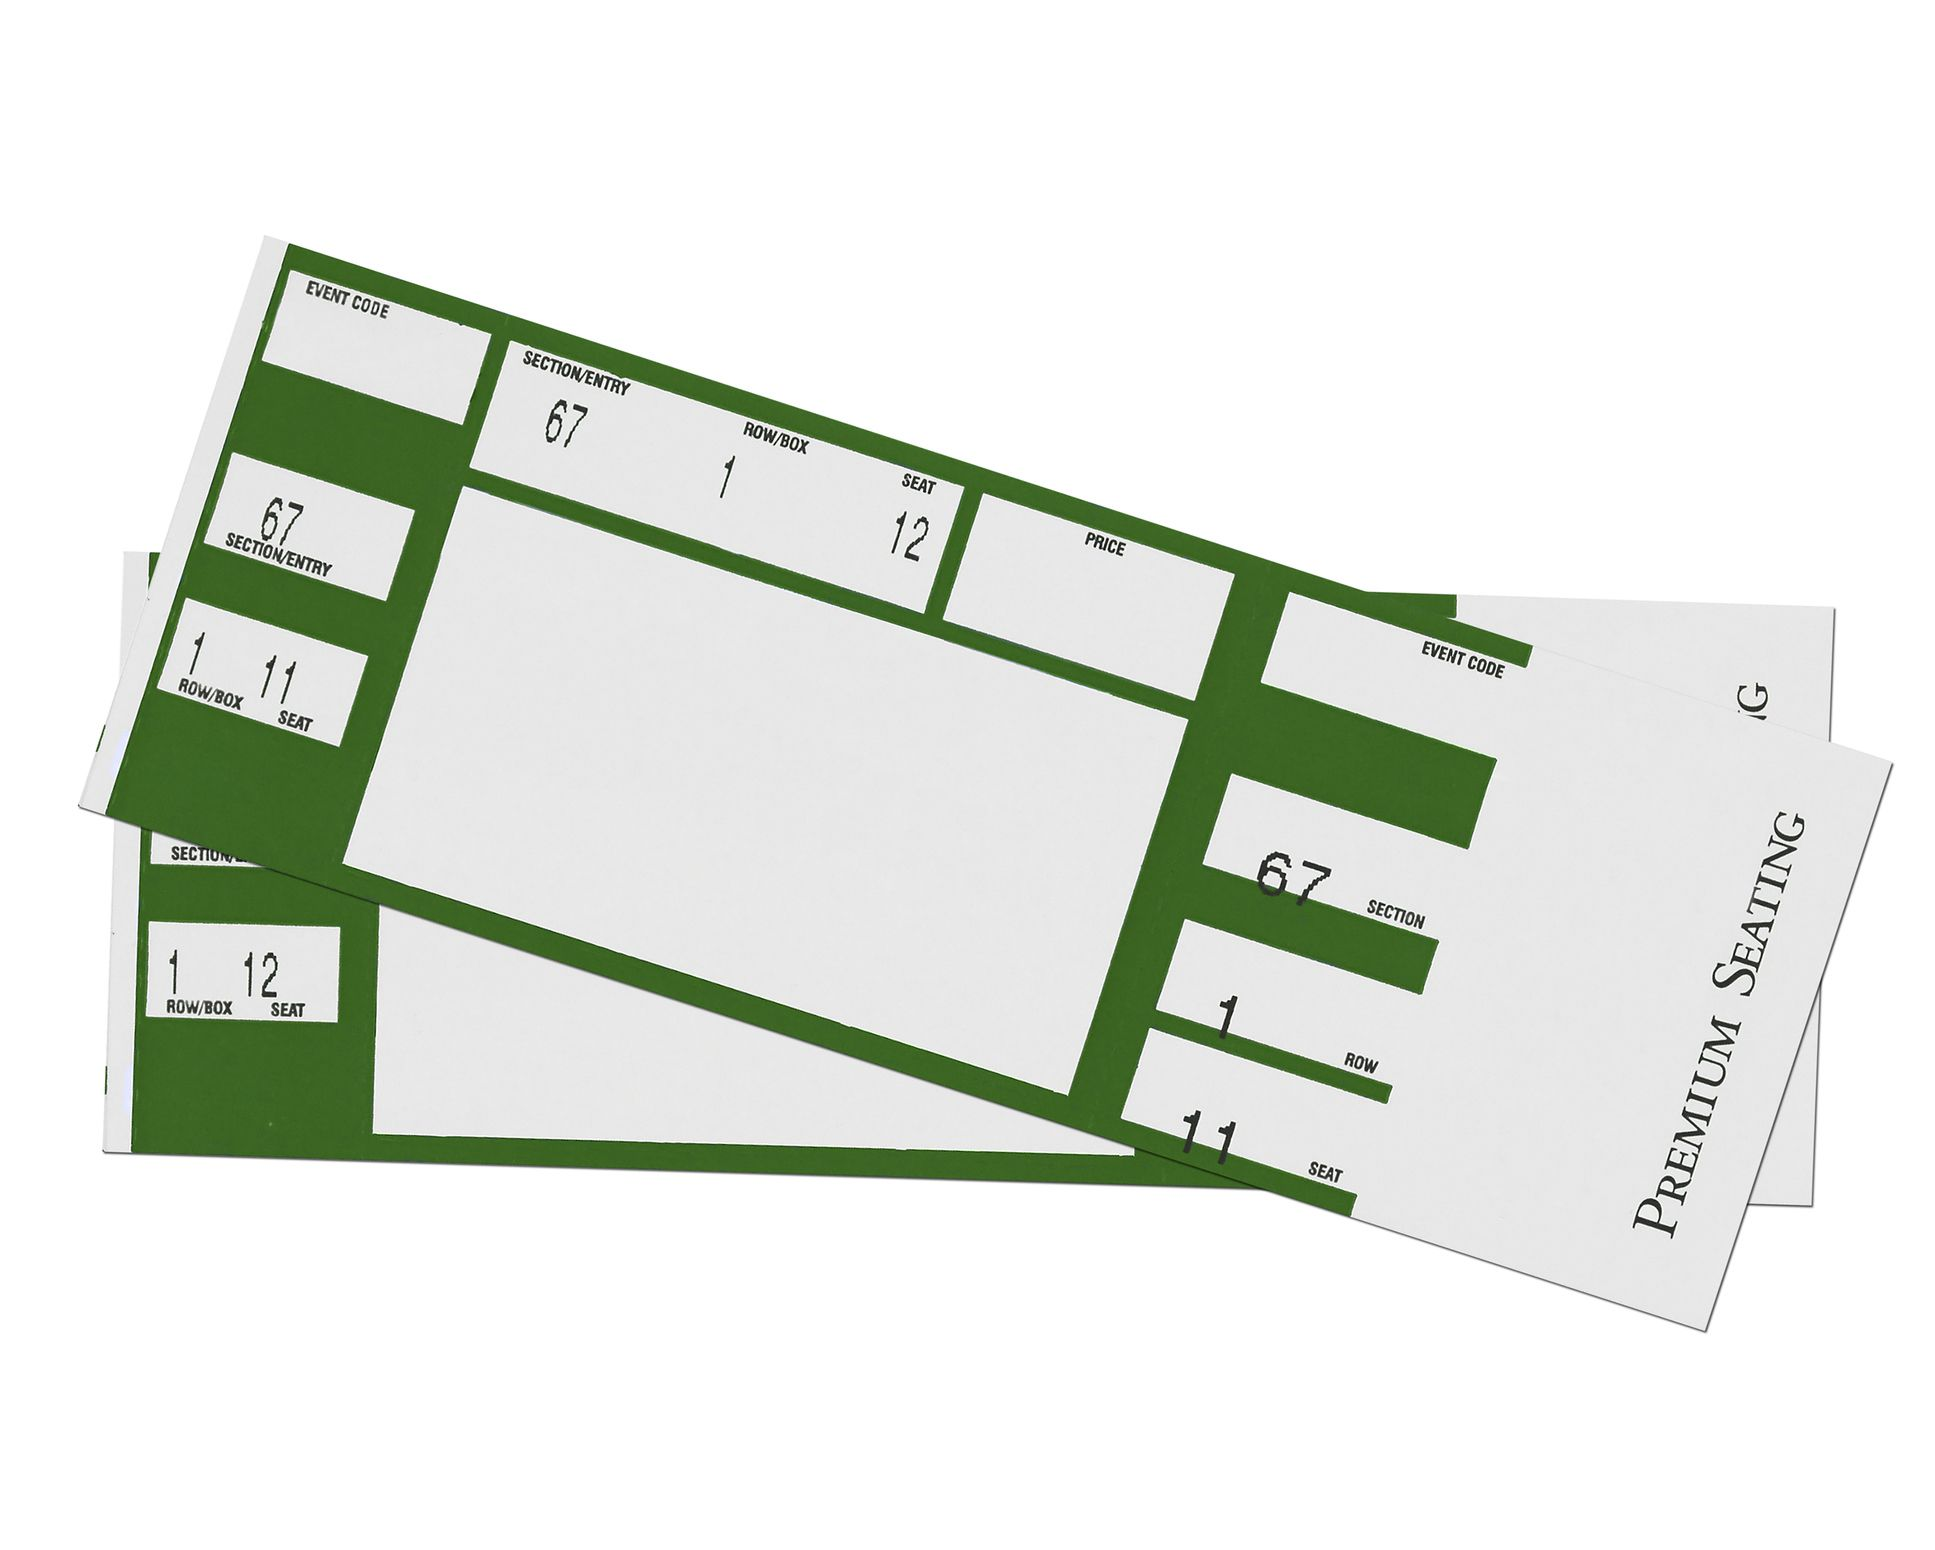 Green concert tickets on a white background.